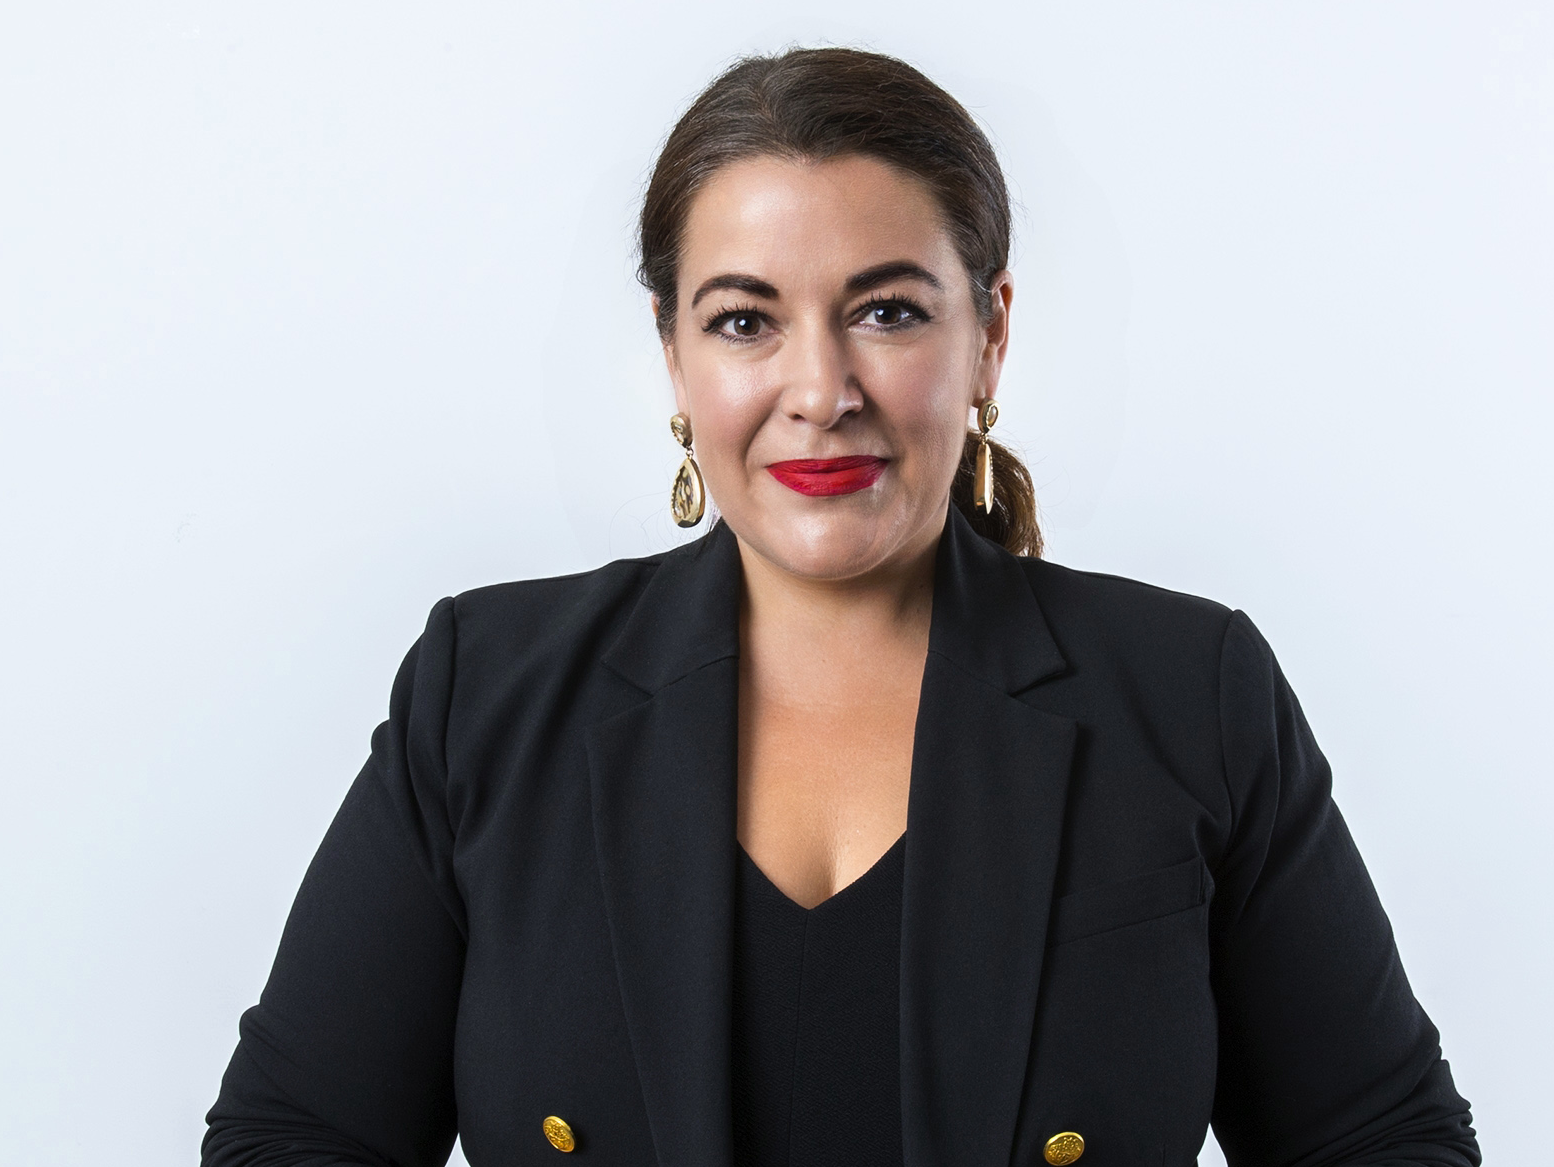 Publicis Media appoints Imogen Hewitt as new chief executive officer of Spark Foundry